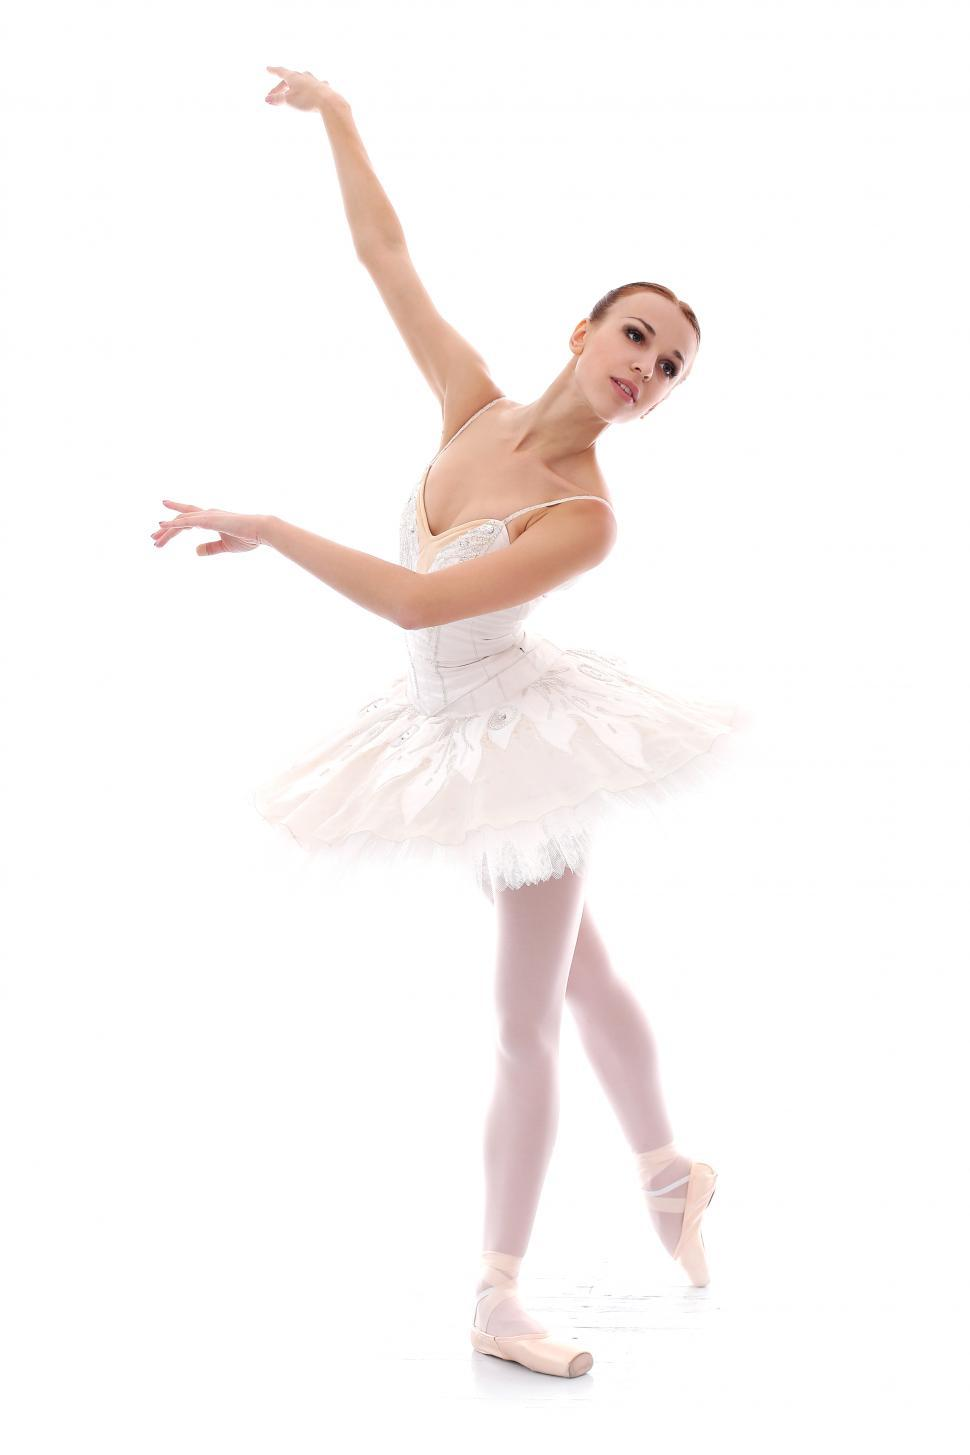 Download Free Stock HD Photo of Ballerina in ballet pose on white background Online